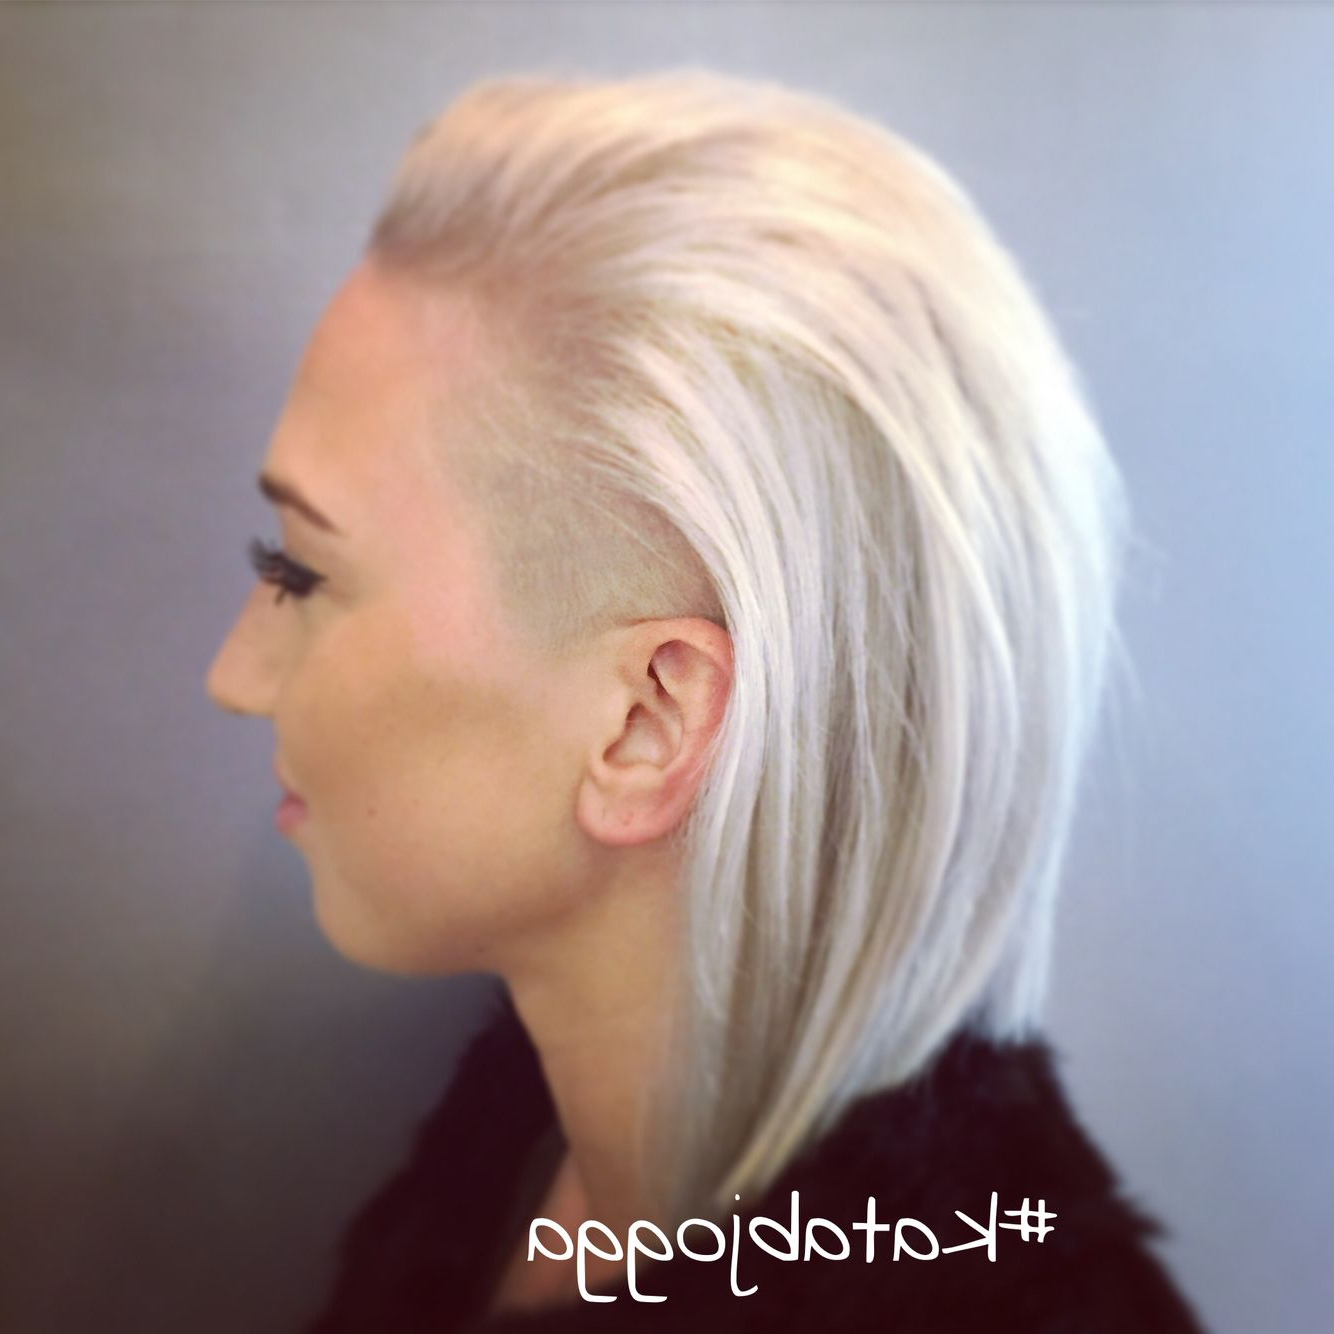 White Hair, Shaved Undercut, Long Bob Haircut | My Stuff #katabjogga Regarding White Bob Undercut Hairstyles With Root Fade (View 20 of 20)